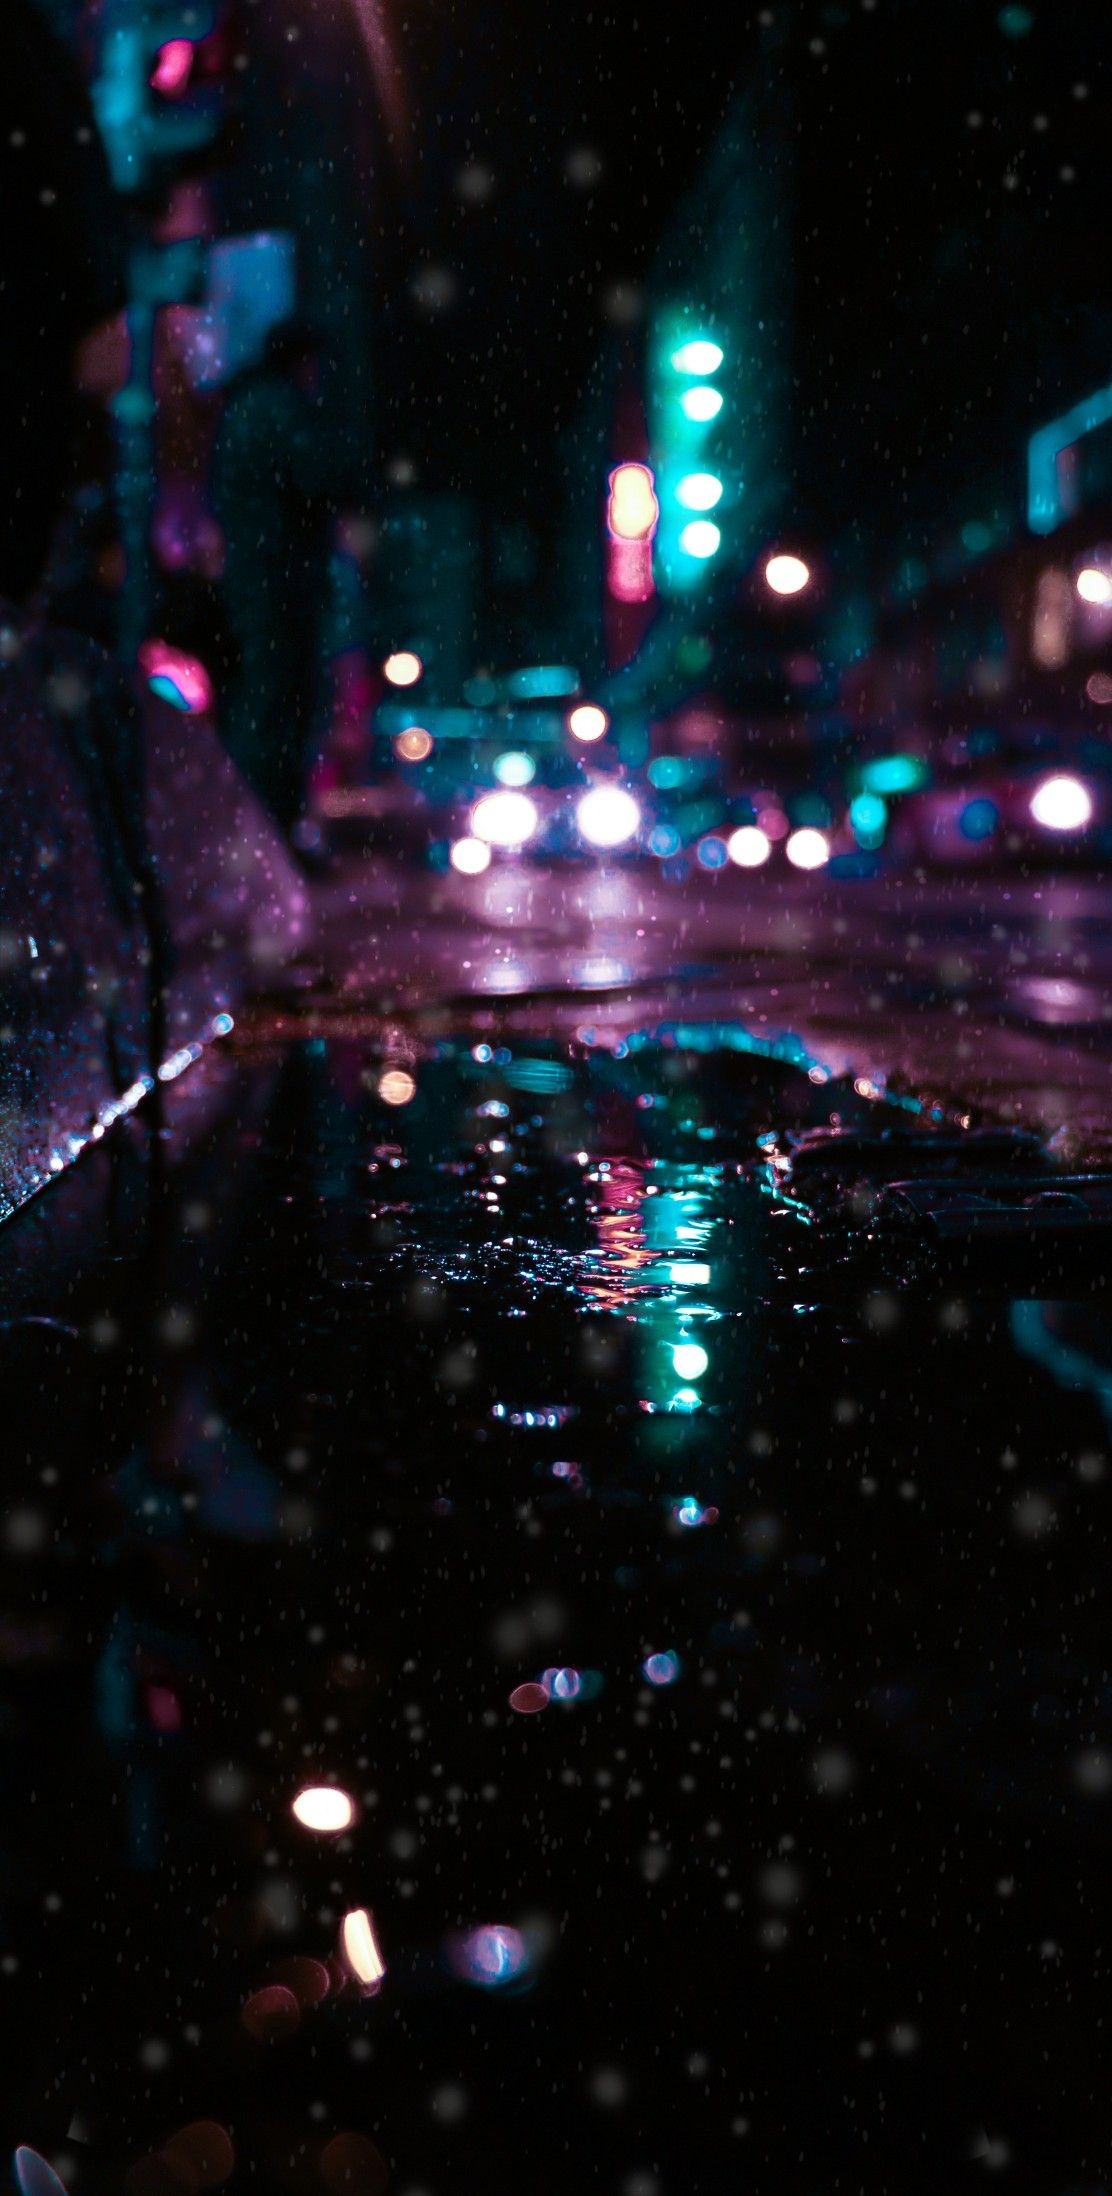 4k Wallpaper Follow me With images Rainy wallpaper Neon 1112x2196